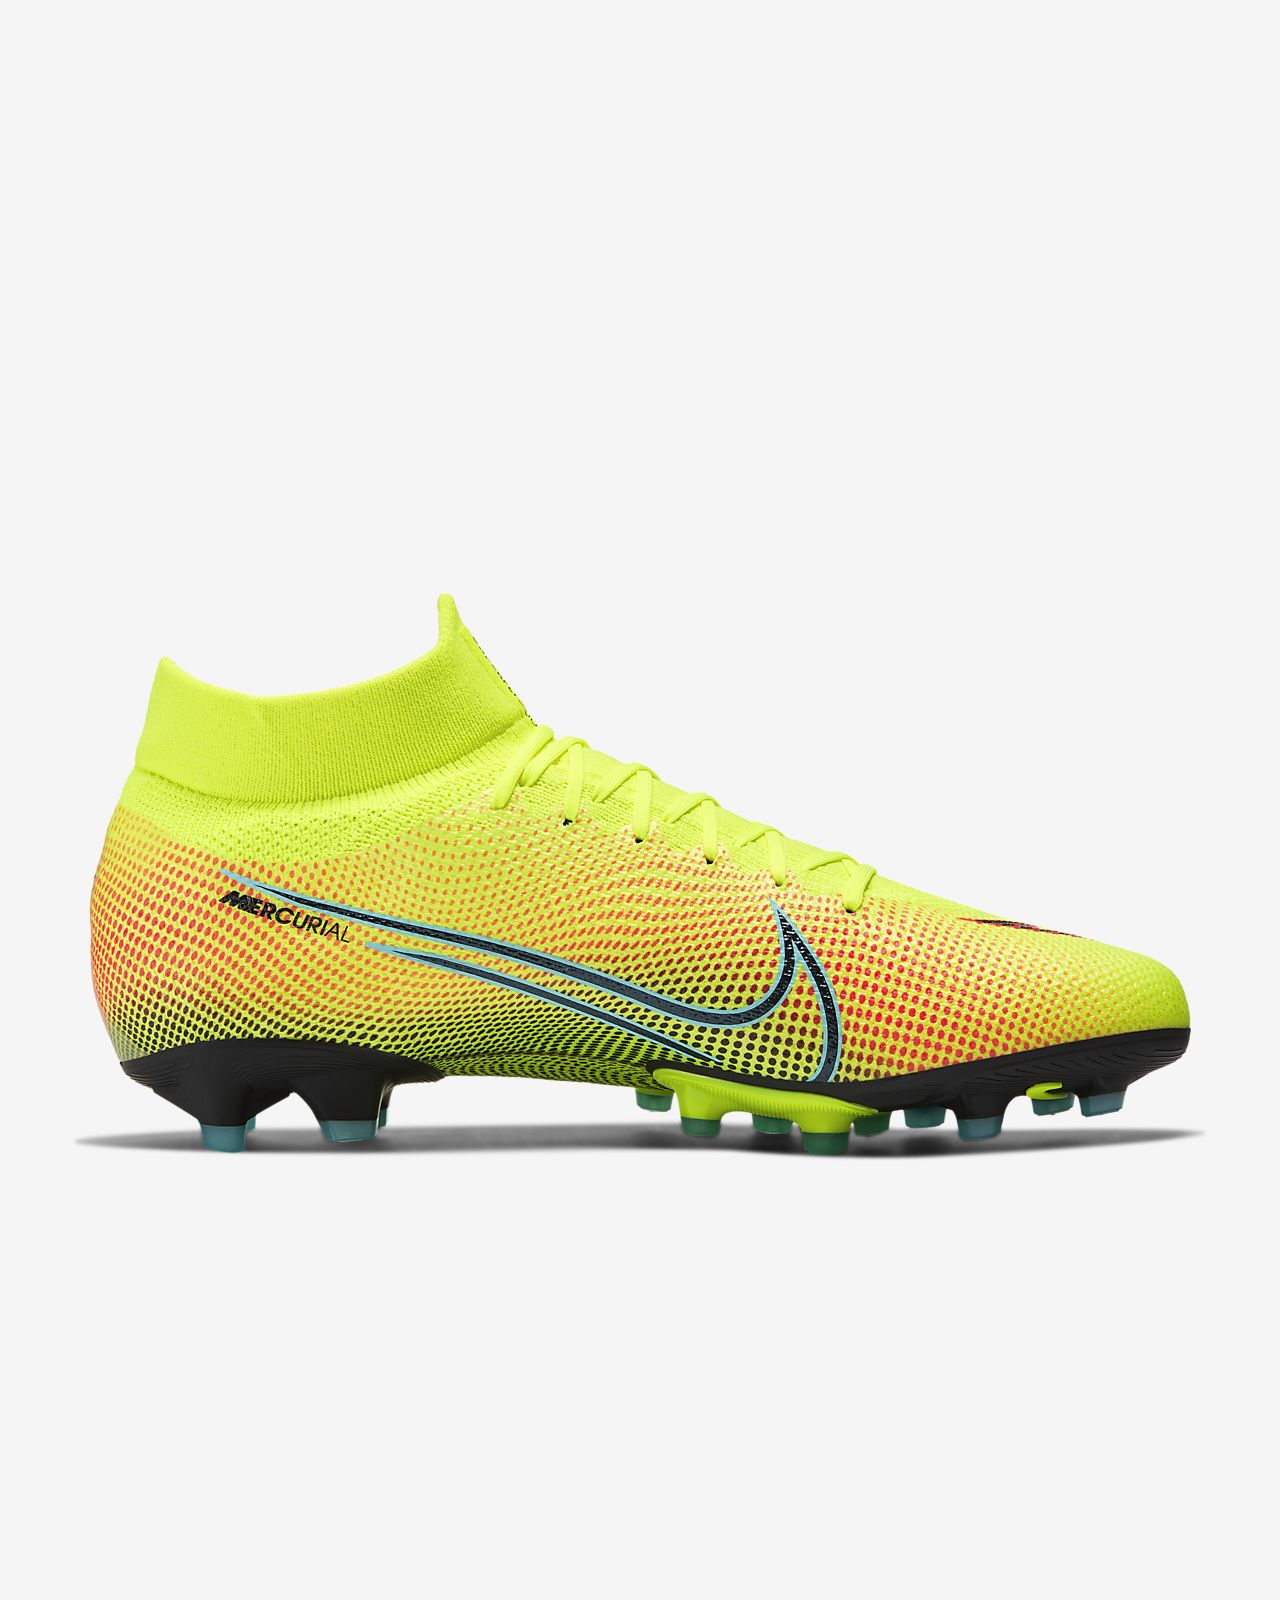 Chaussure de football à crampons pour terrain synthétique Nike Mercurial Superfly 7 Pro MDS AG PRO